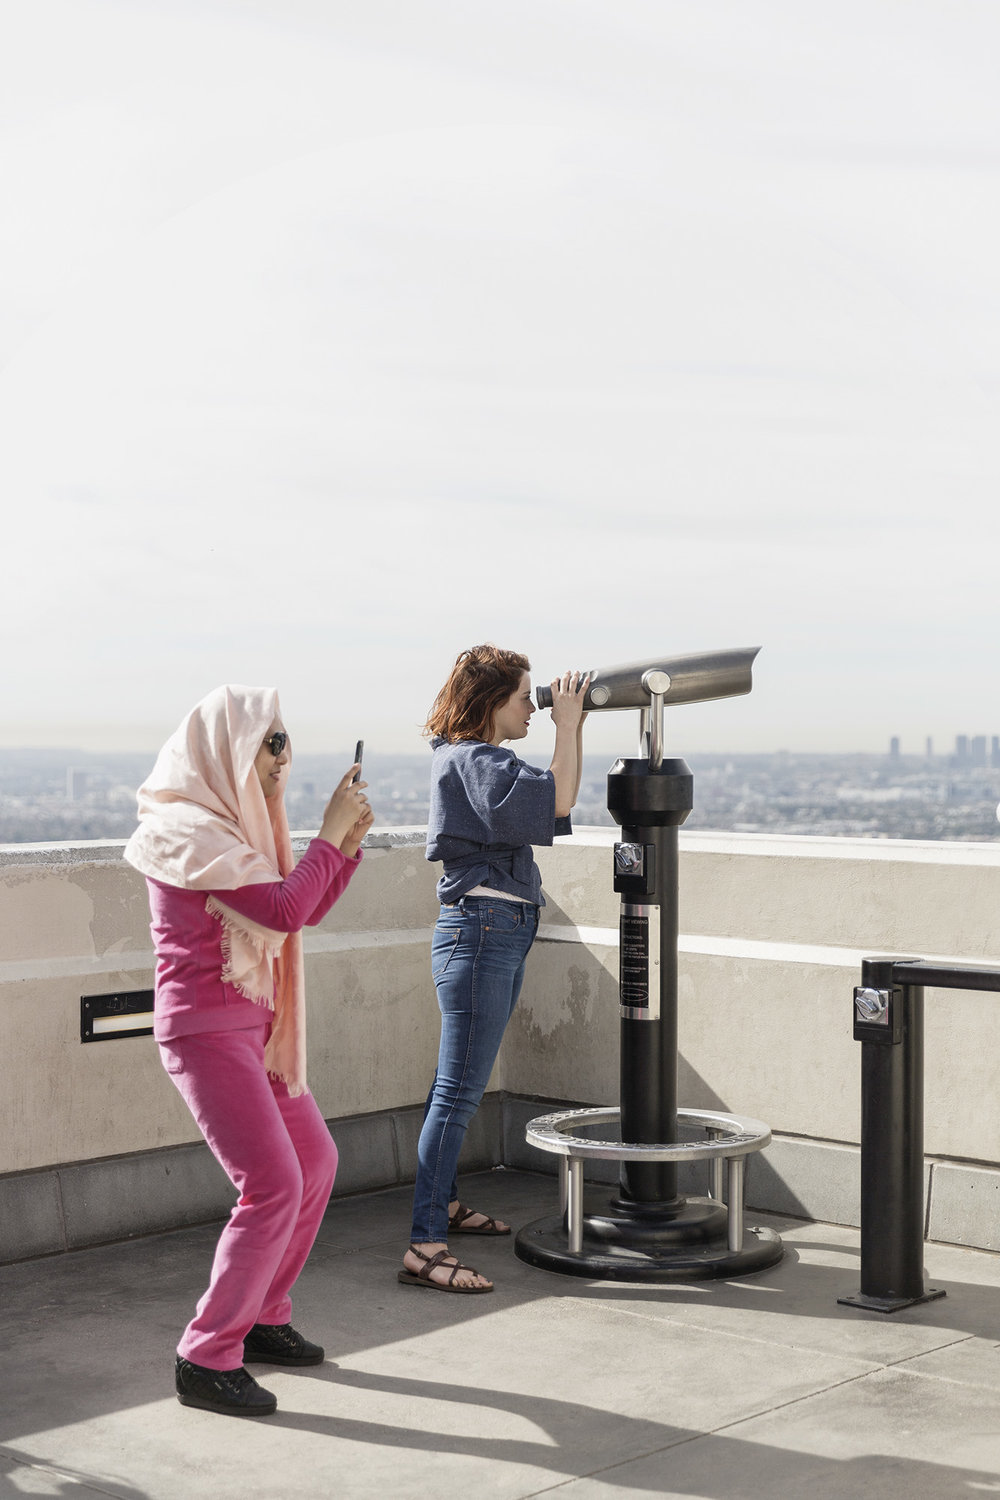 Two women enjoy the view of Los Angeles from the Griffith Observatory by Denver Boulder Colorado Editorial and Commercial Photographer Rebecca Stumpf, specializing in food, lifestyle, and travel photography.